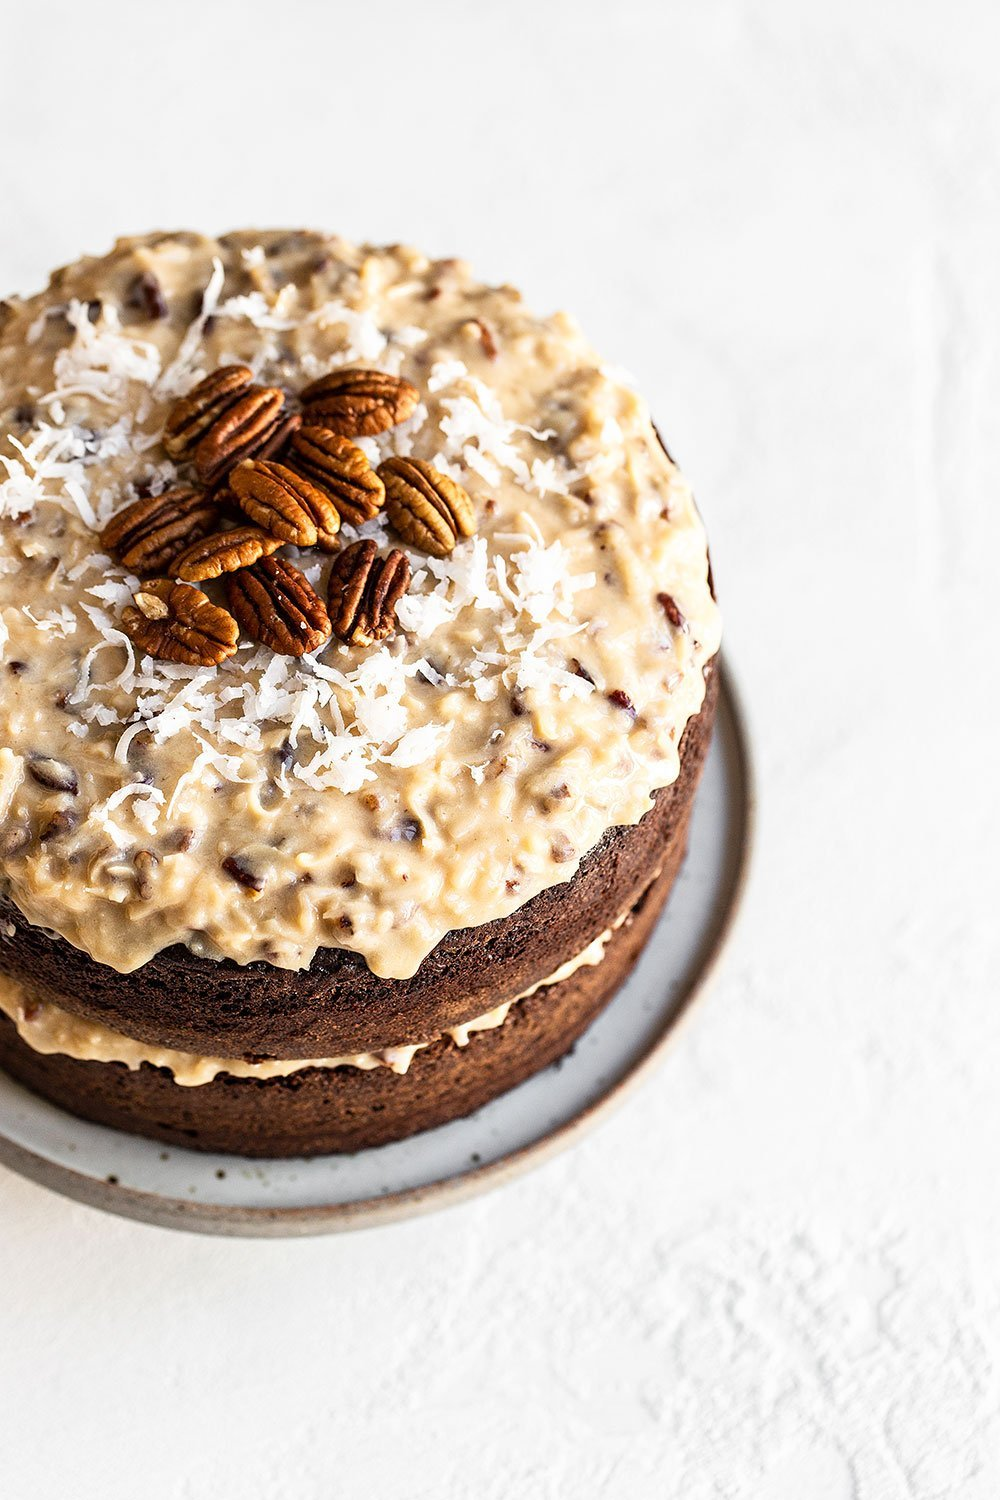 Chocolate Cake with Coconut Pecan Frosting on a plate